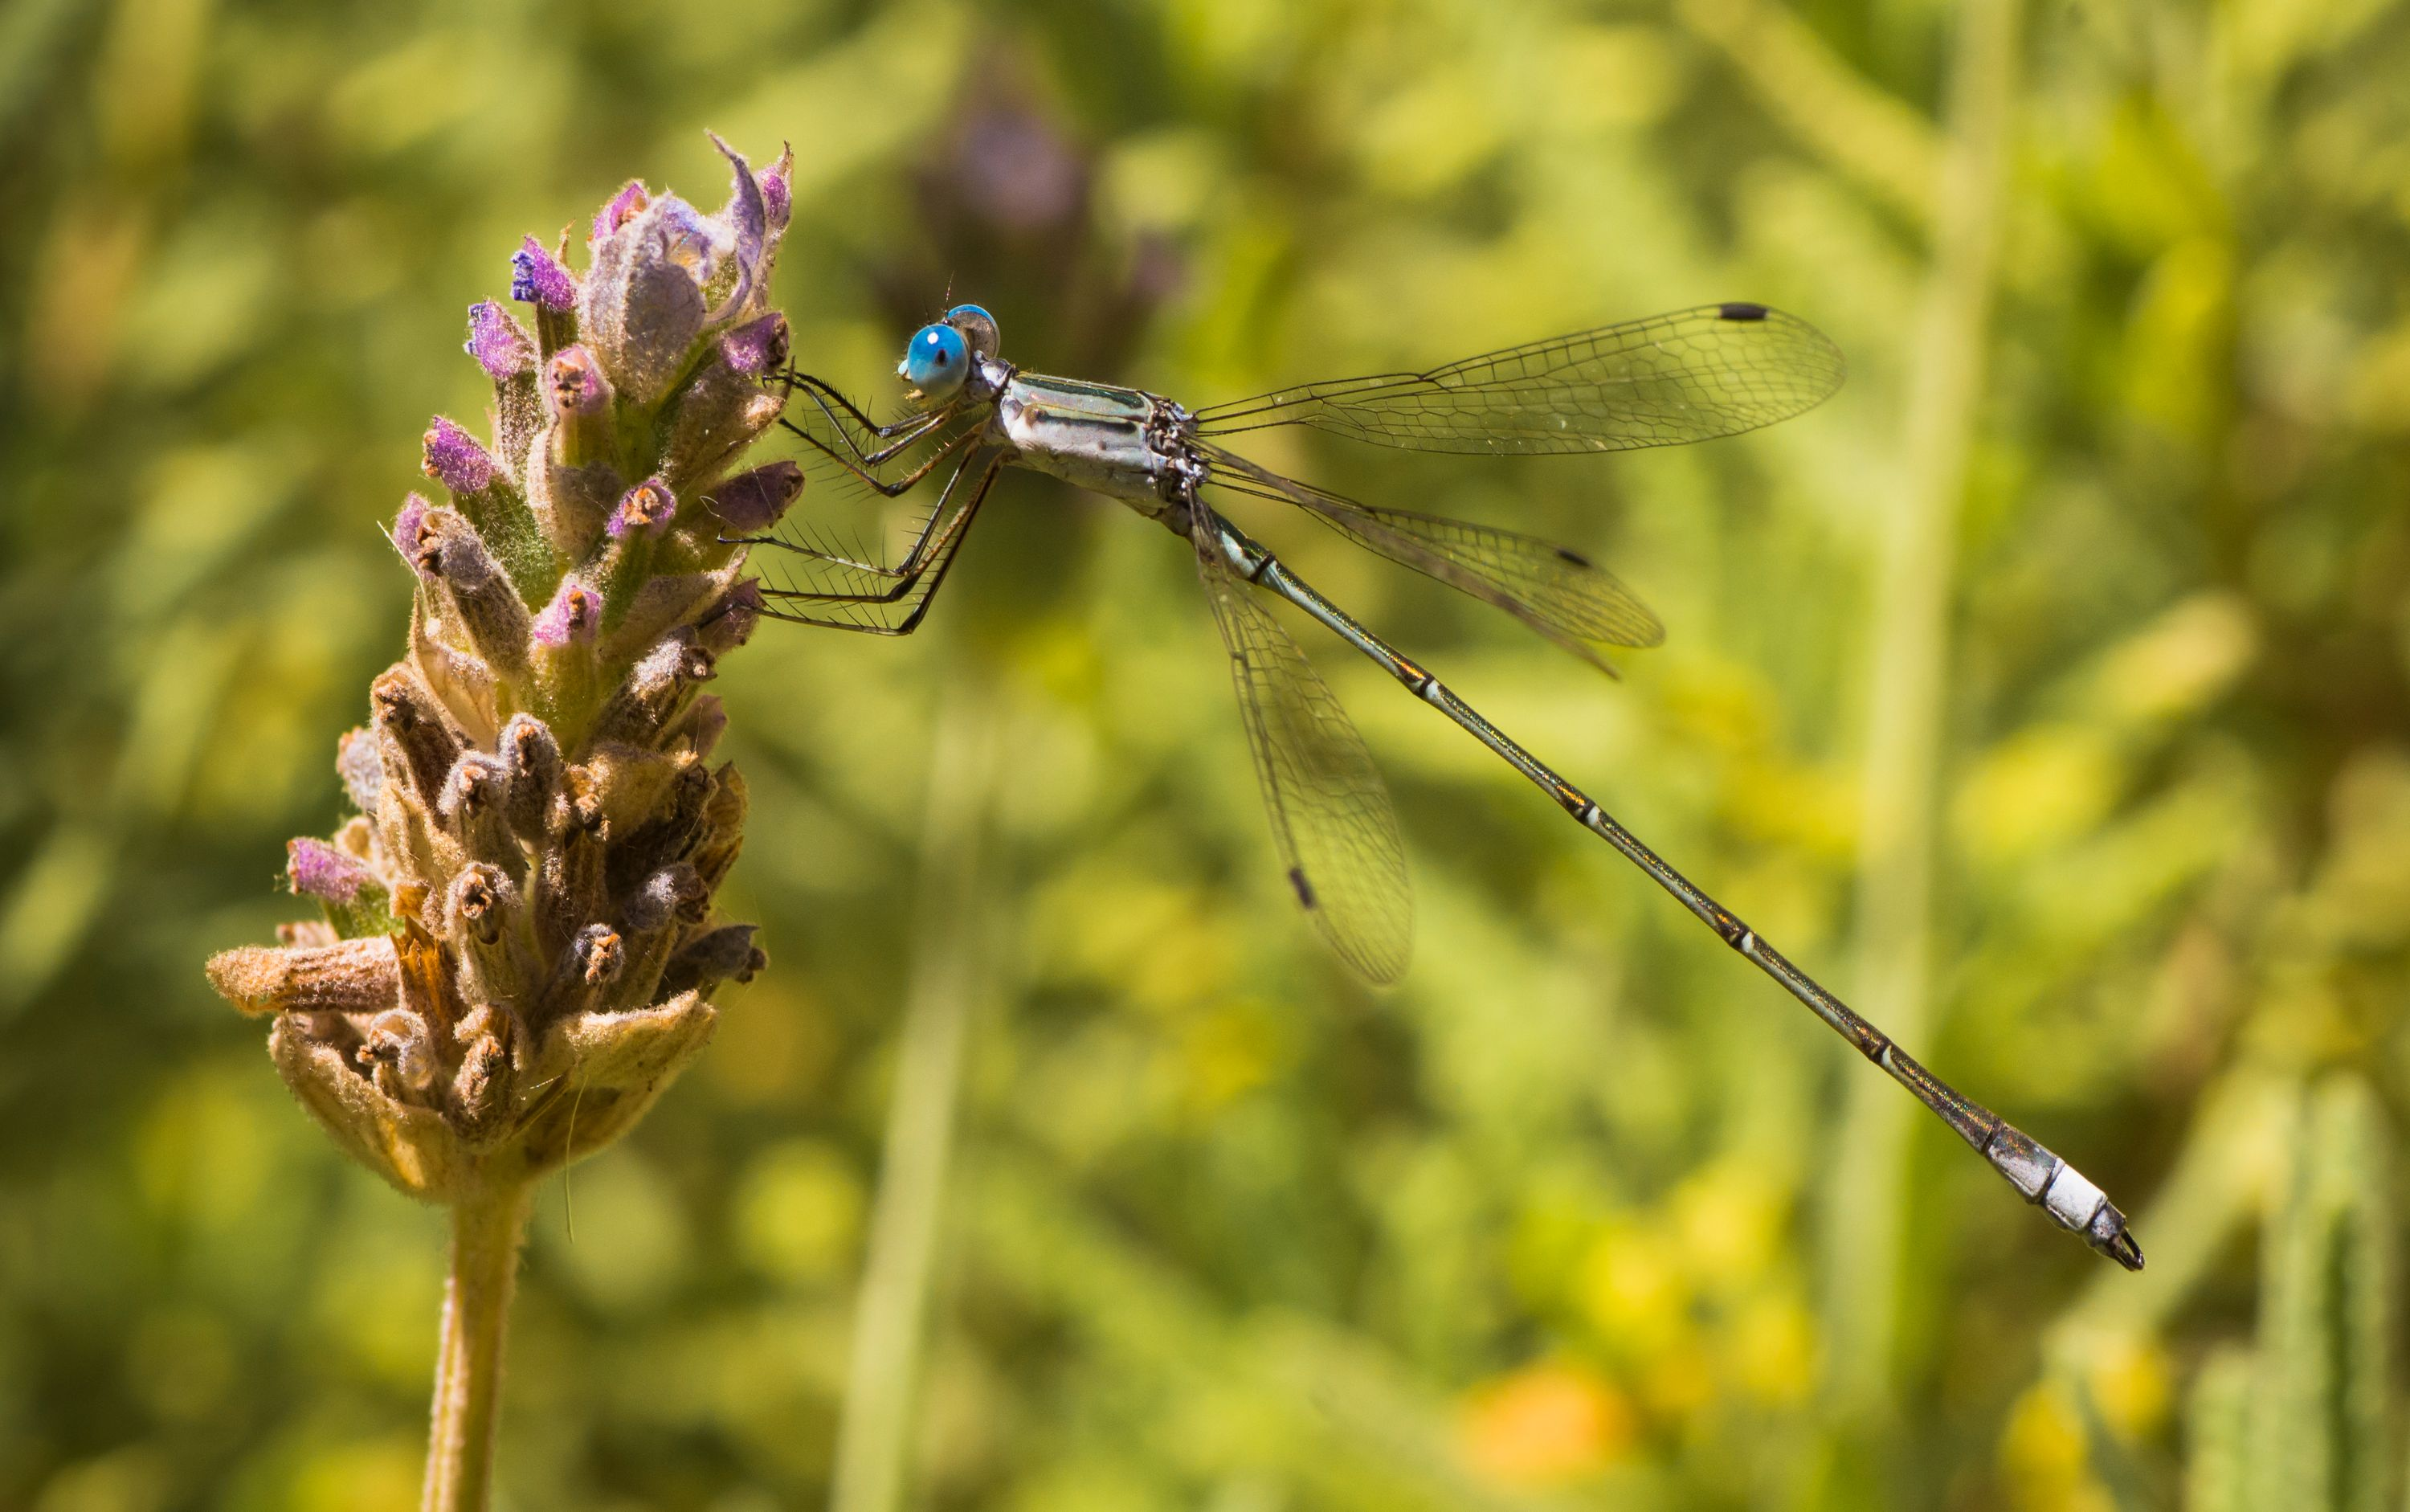 Dragonfly with blue eyes